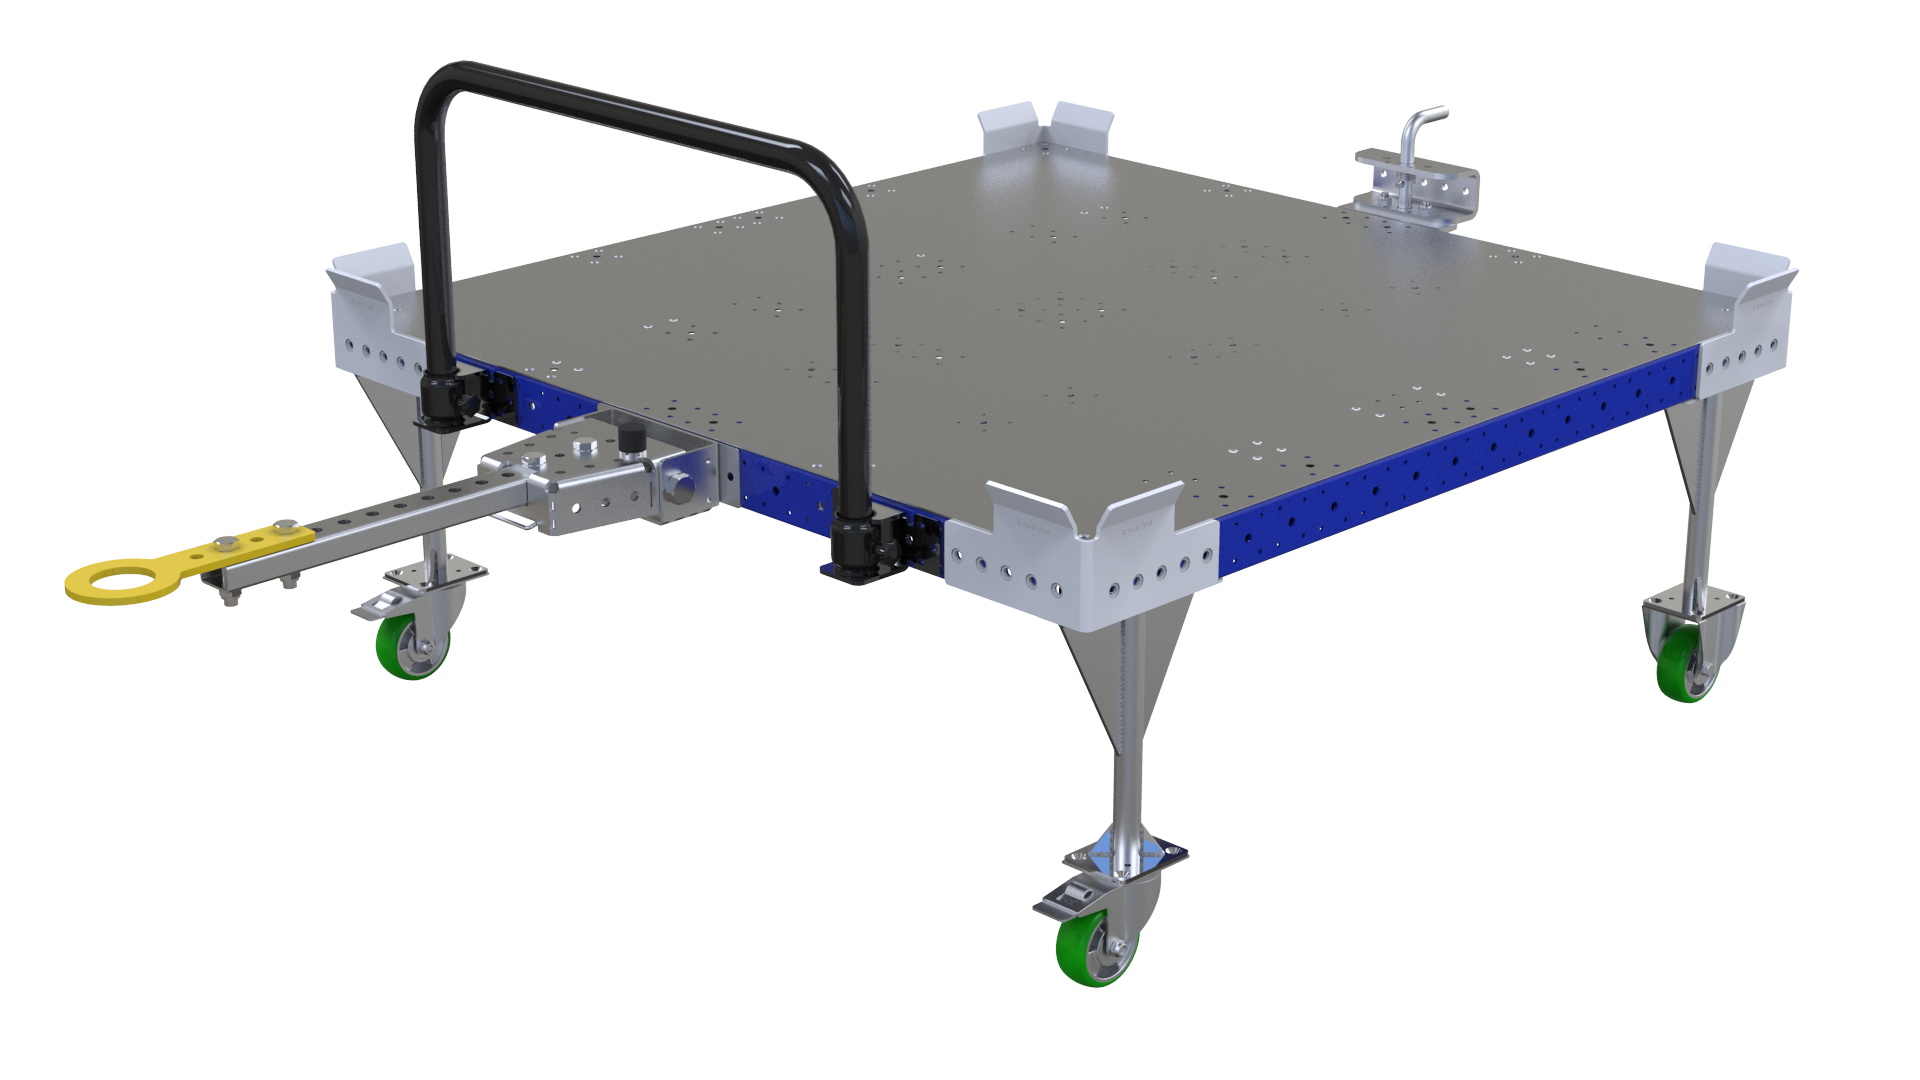 Pallet cart designed to work together with an AGV